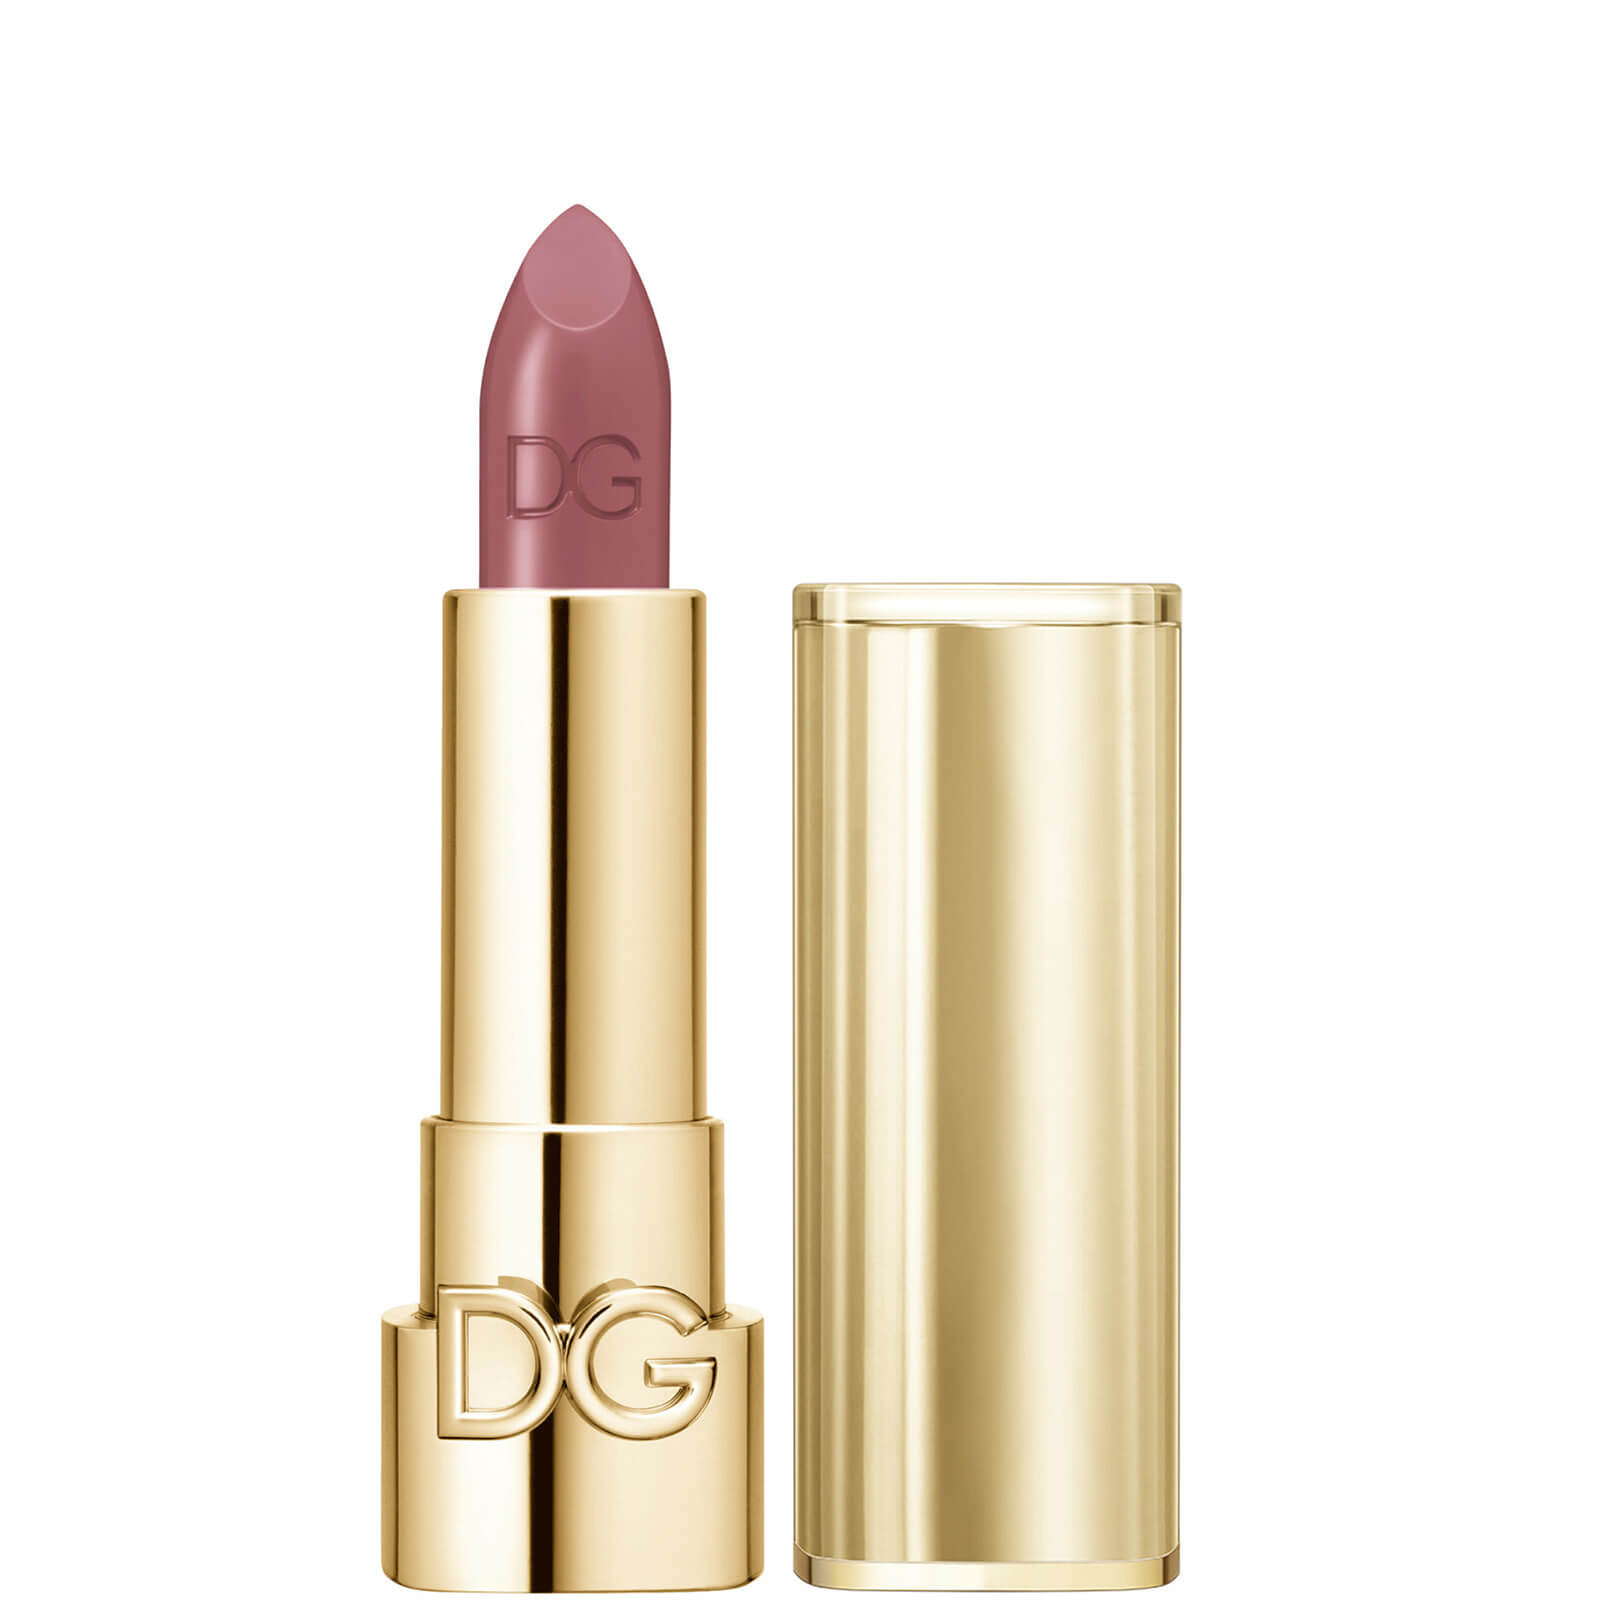 Dolce&Gabbana The Only One Lipstick + Cap (Gold) (Various Shades) - 150 Creamy Mocha